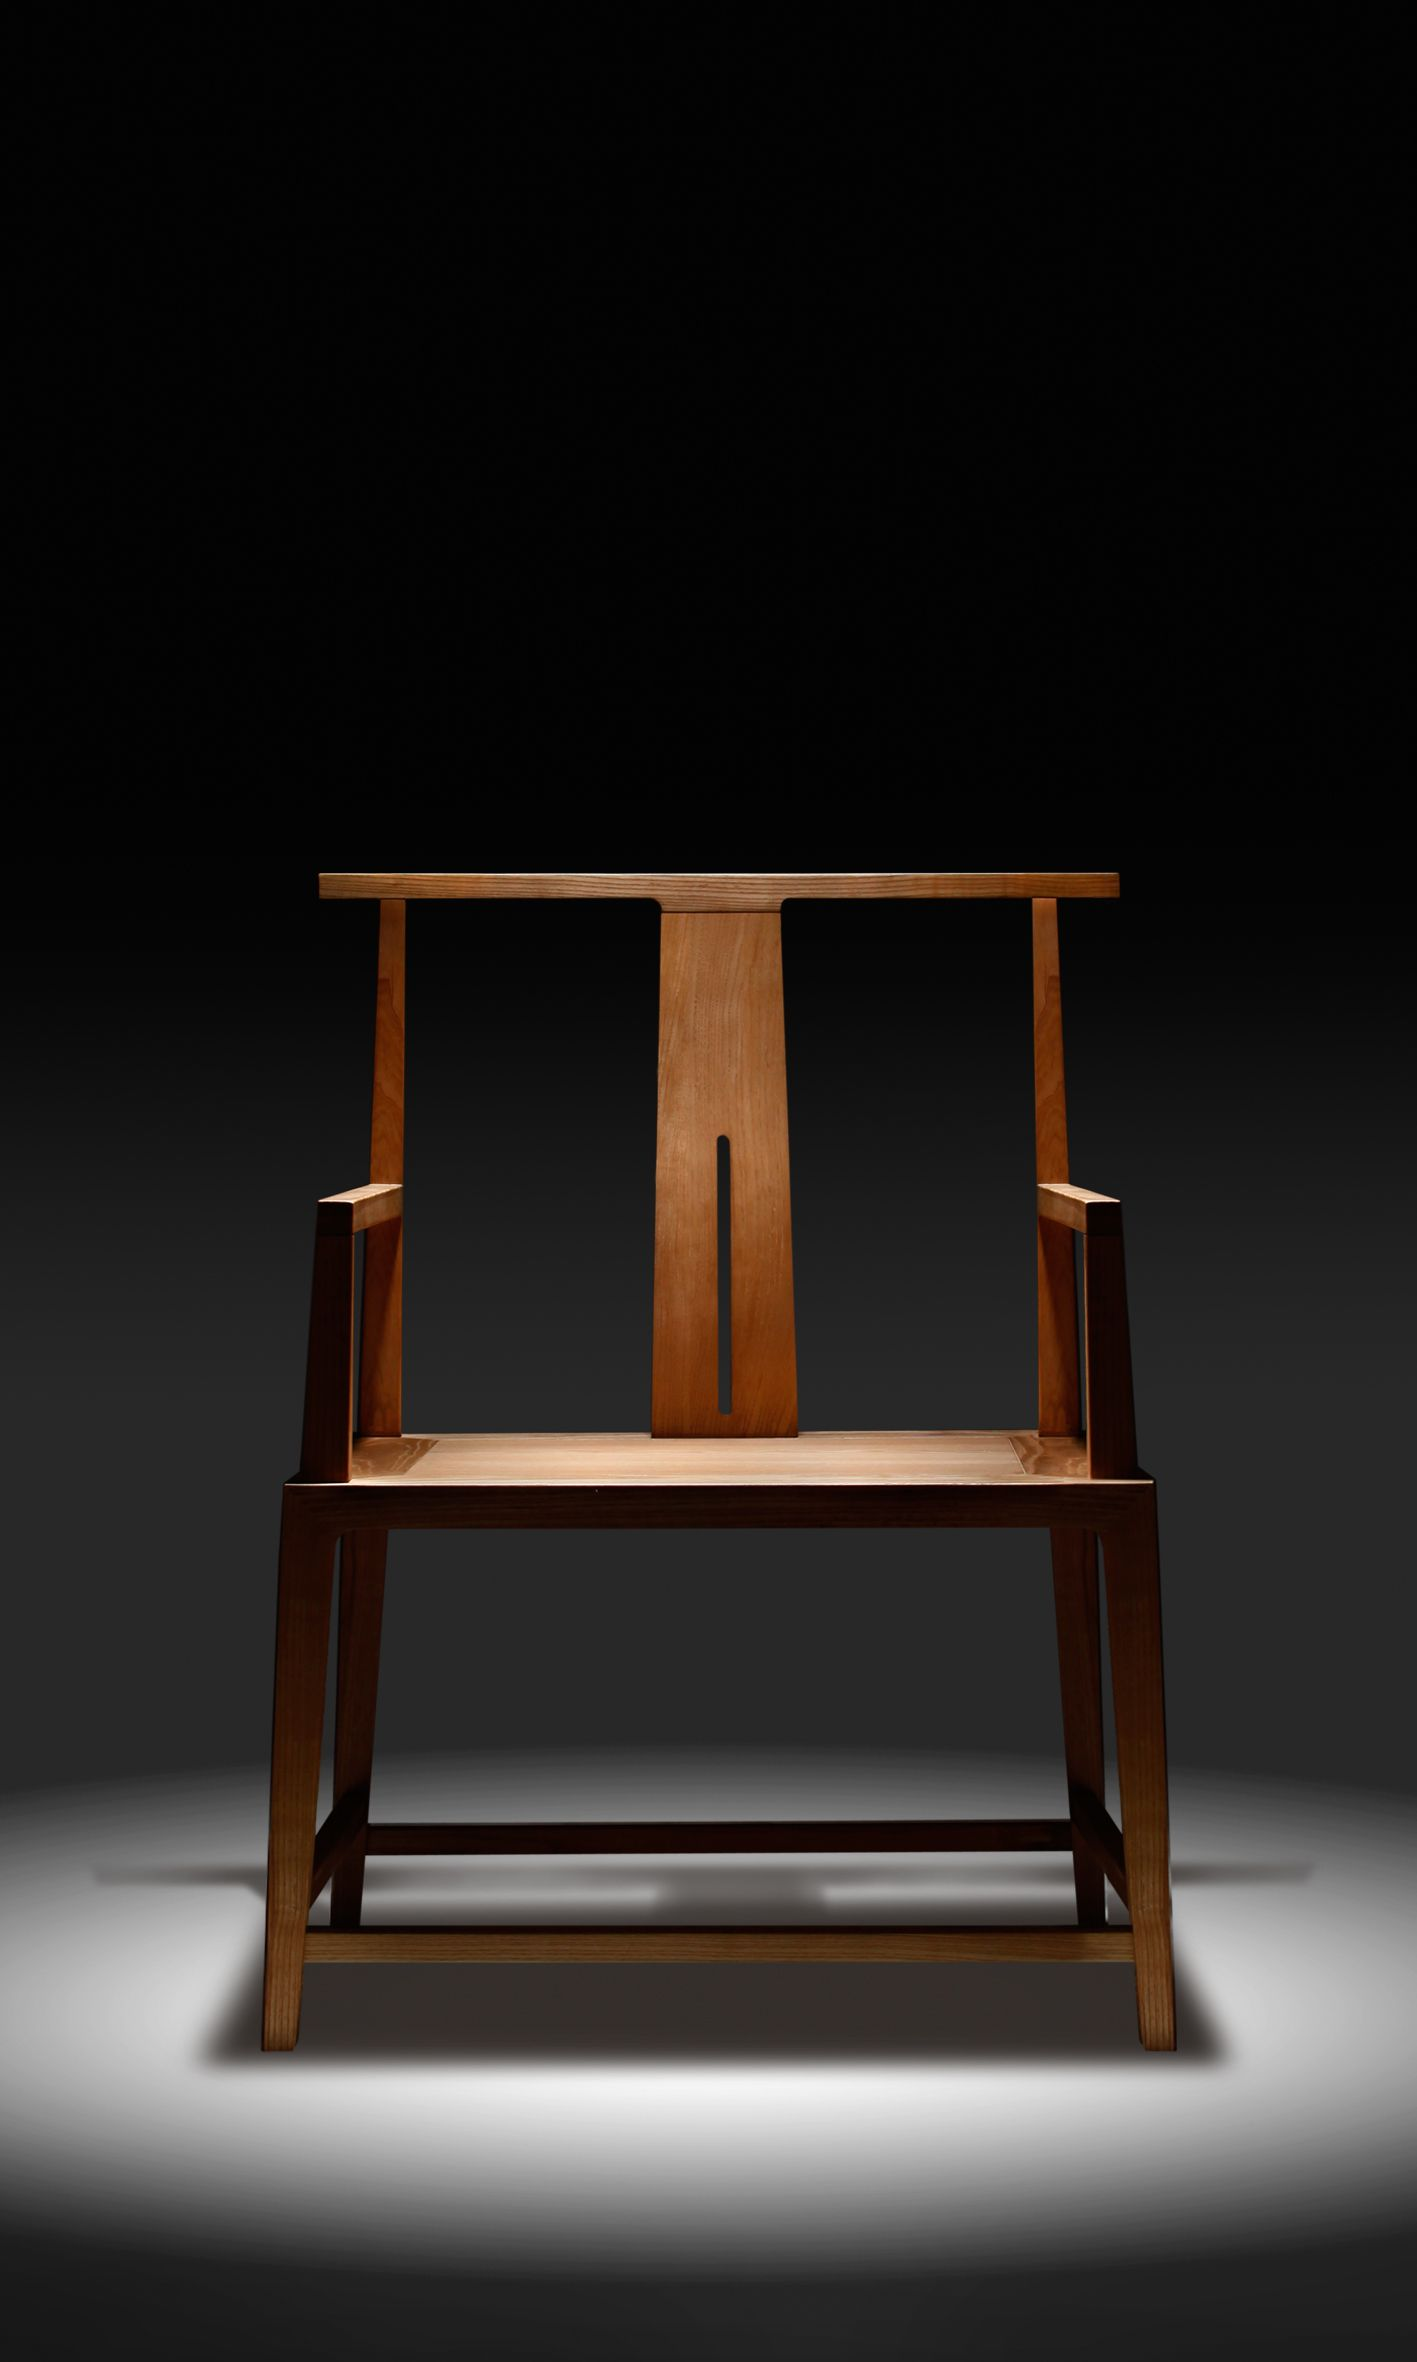 Muebles Orientales Antiguos Shen Baohong 沈寶宏 U 43 Furniture 小宽椅 Small Wide Chair 2011